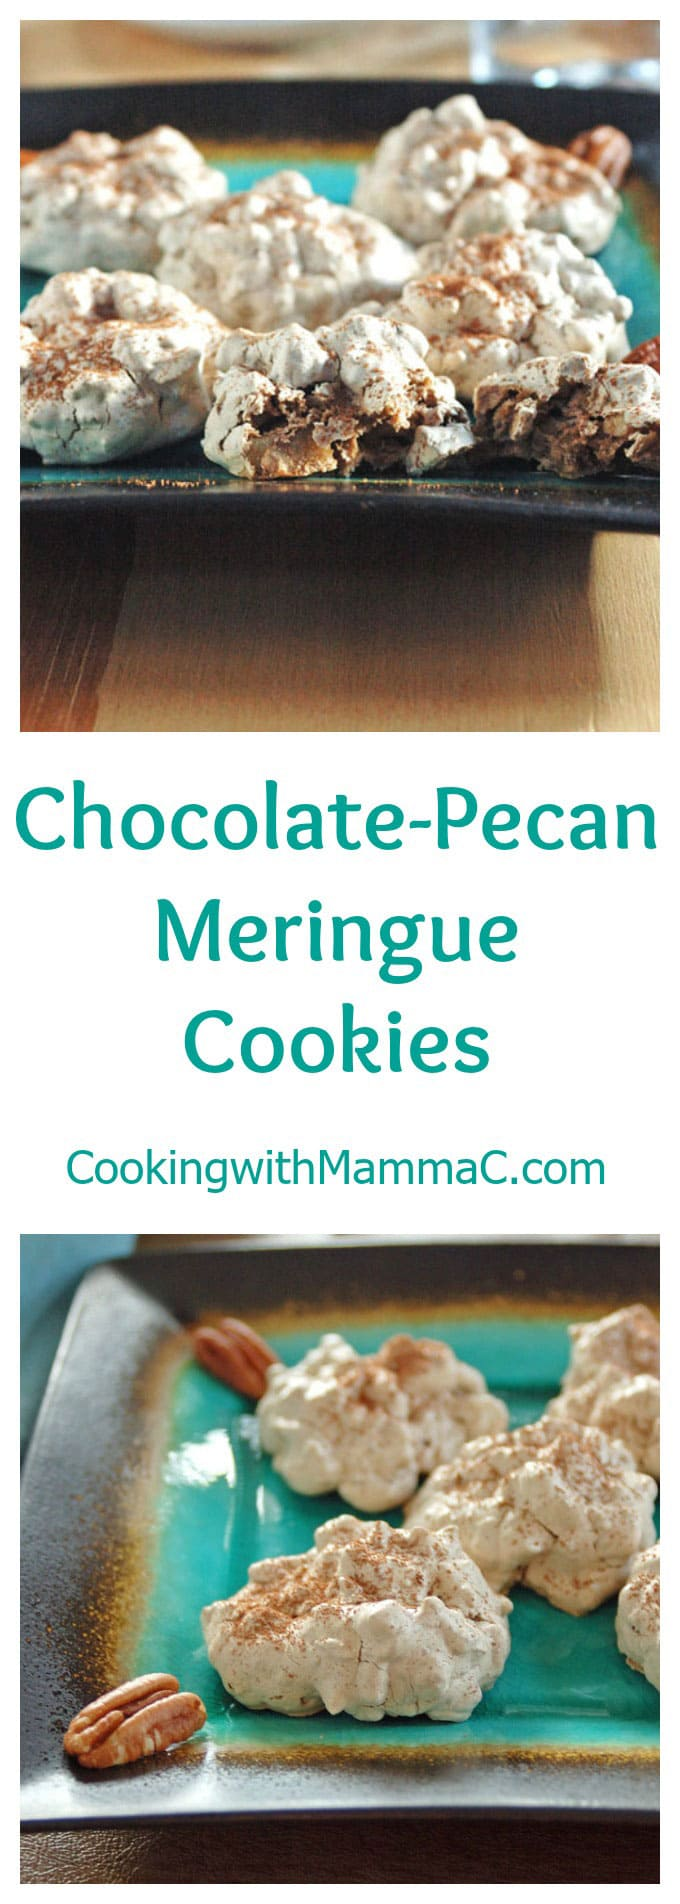 Crunchy on the outside, chewy on the inside, these gluten free meringue cookies are so addictive!